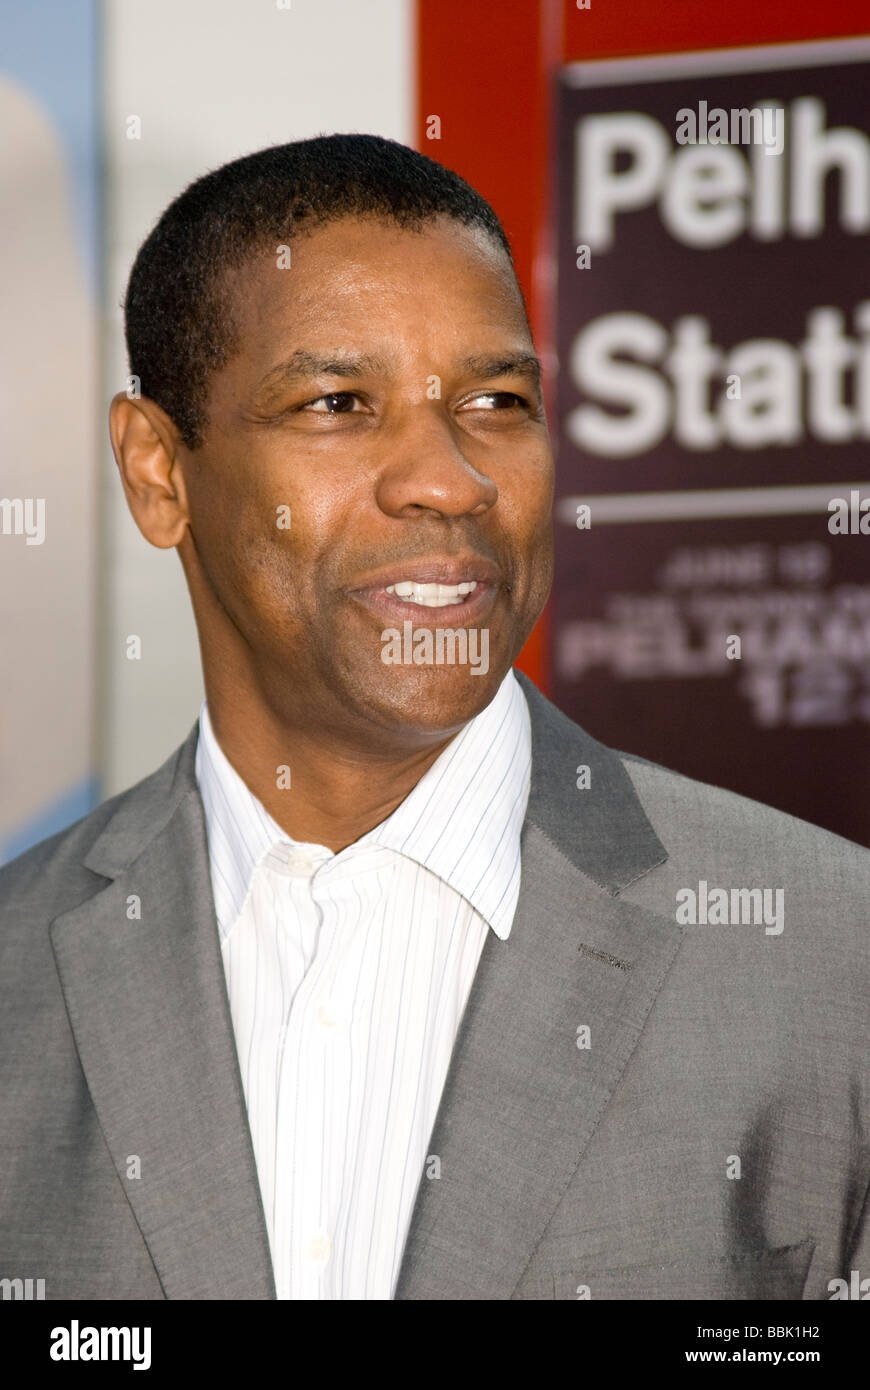 """LOS ANGELES - JUNE 4: Denzel Washington arrives at the """"Taking of Pelham 123"""" premiere in Westwood, Los Angeles, Stock Photo"""